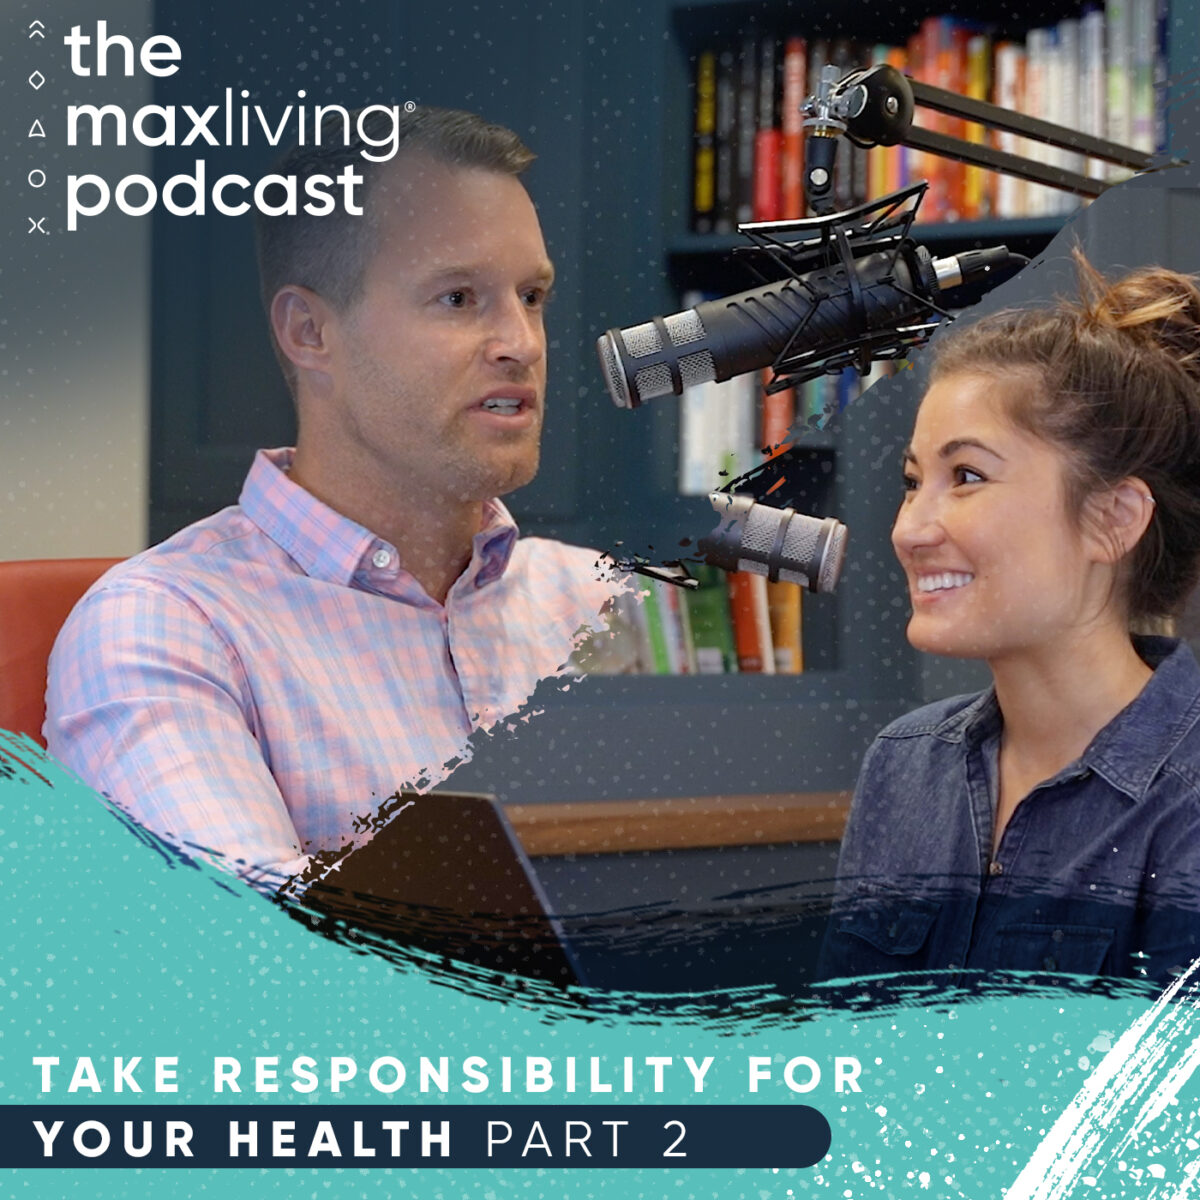 Take Responsibility for Your Health Part 2